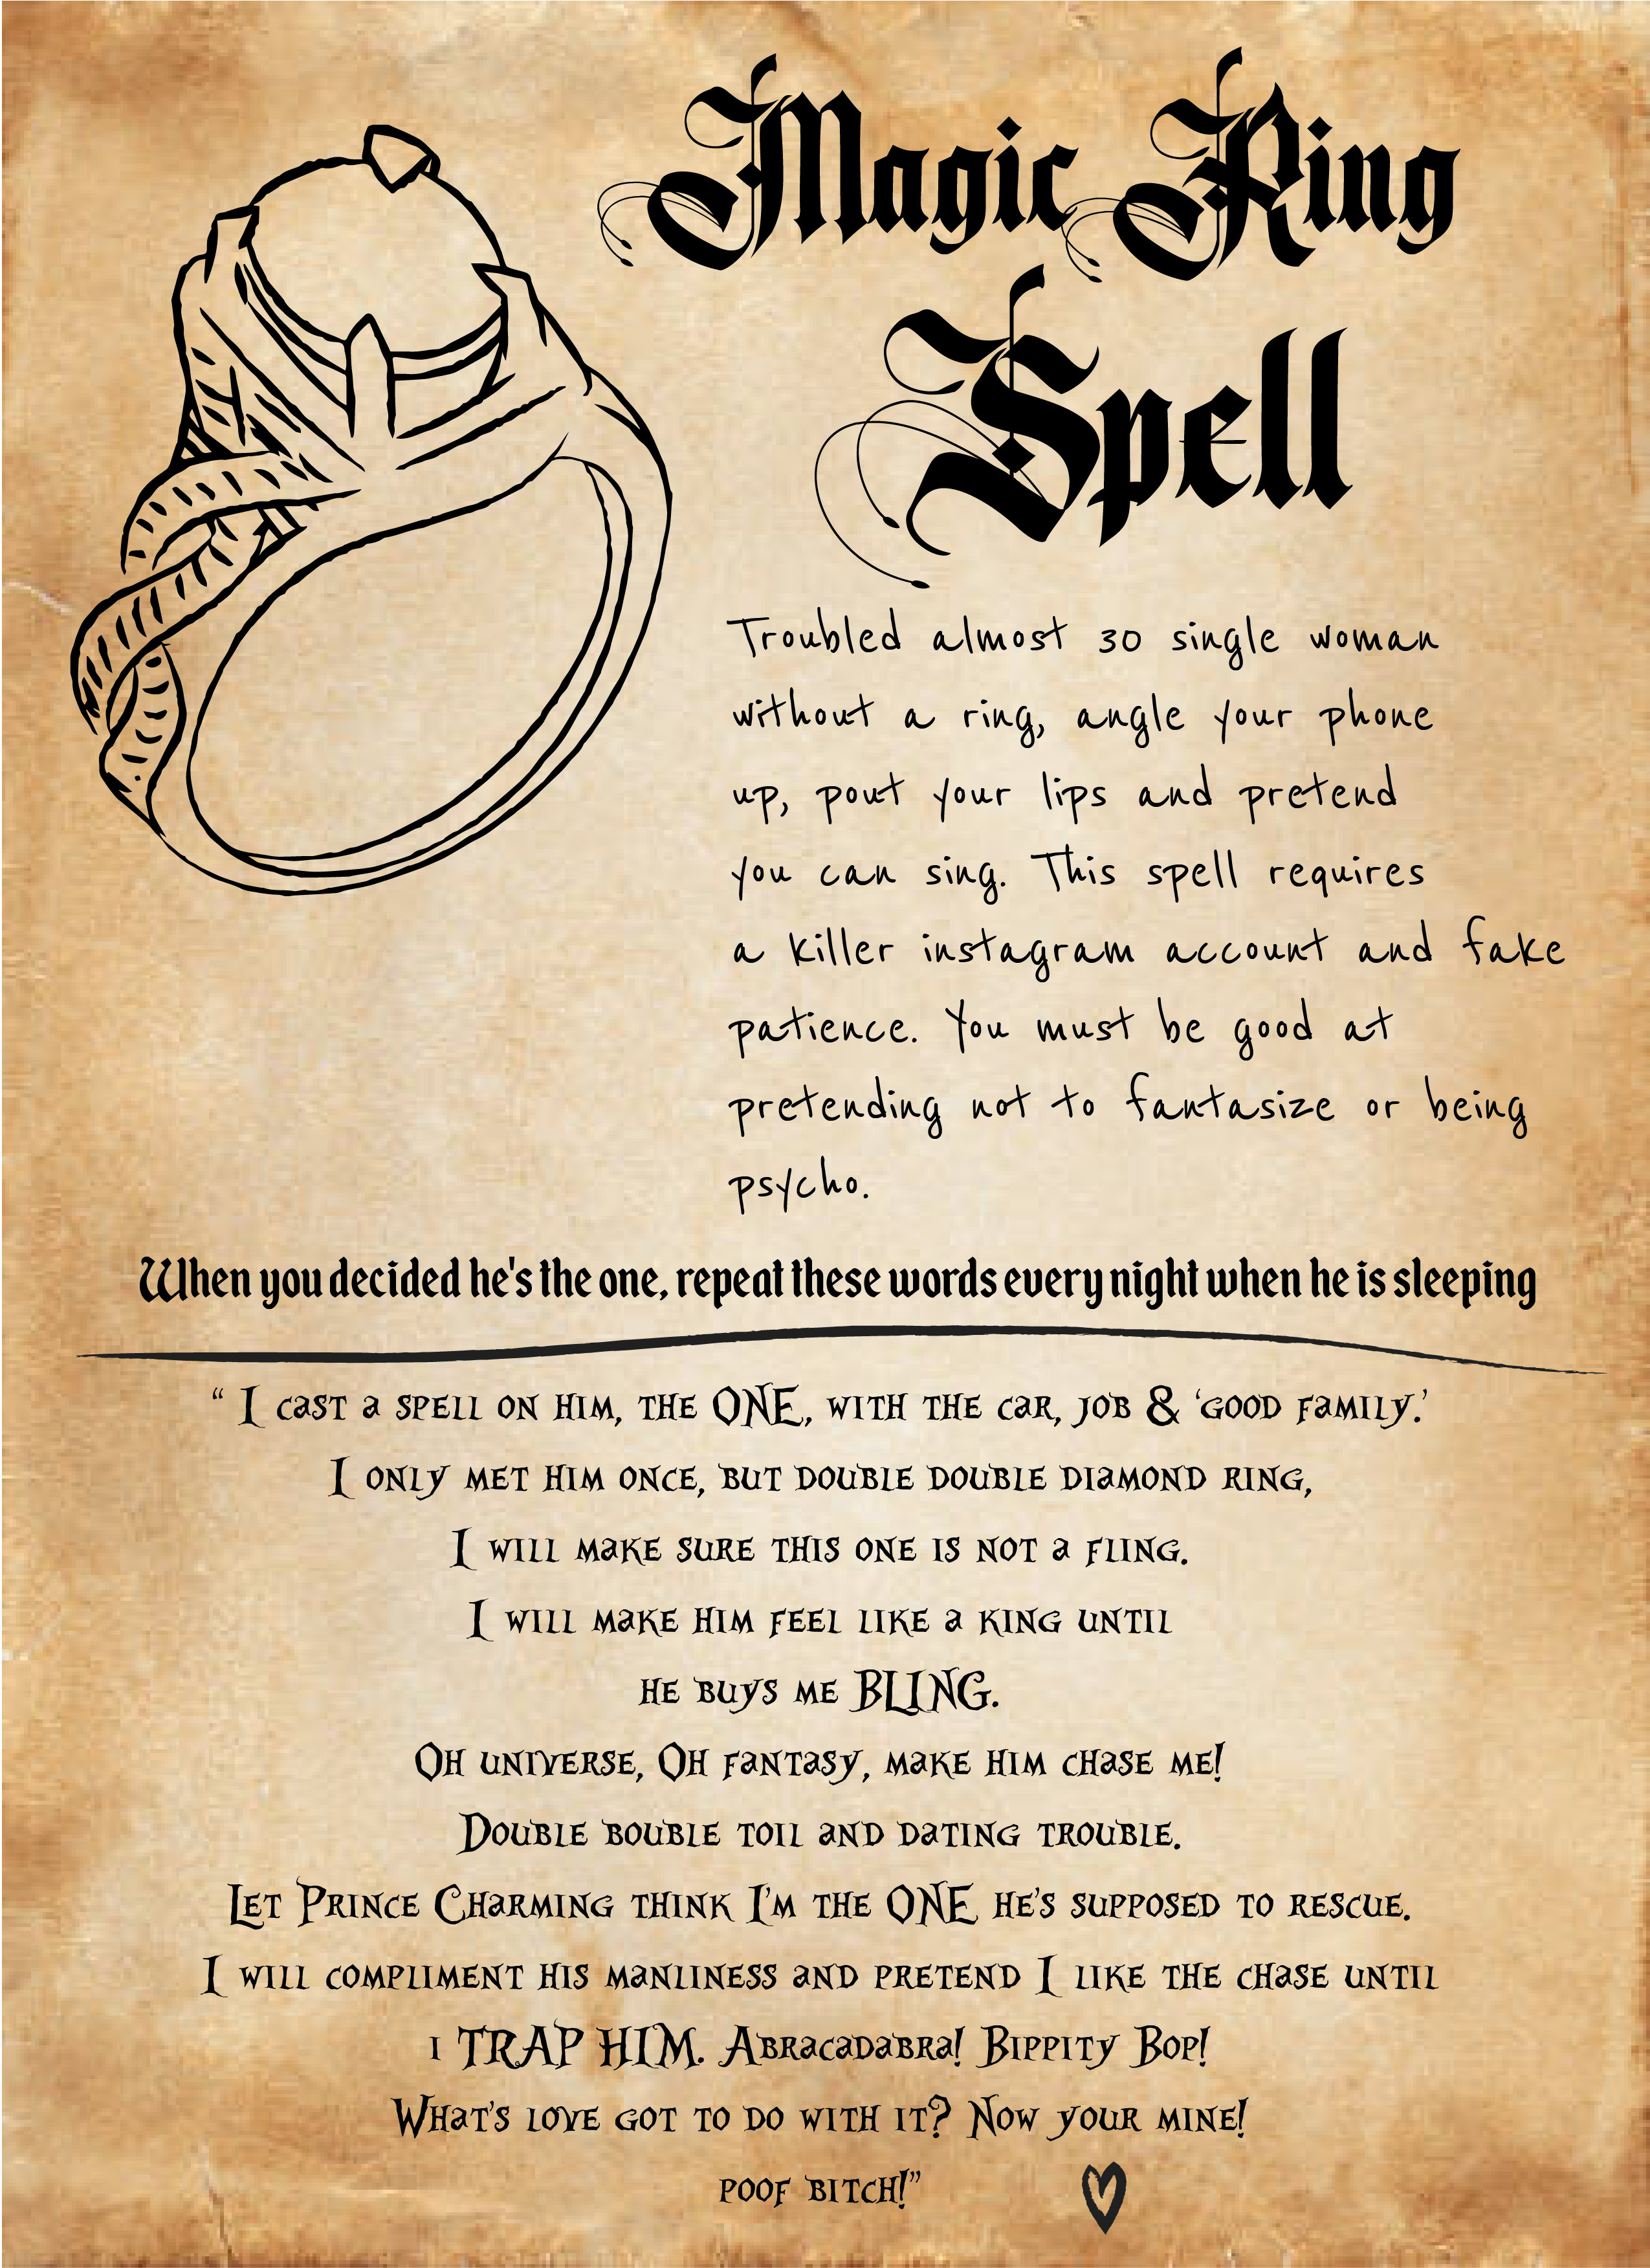 i put a spell on you! magic spell to get a diamond ring. — the last